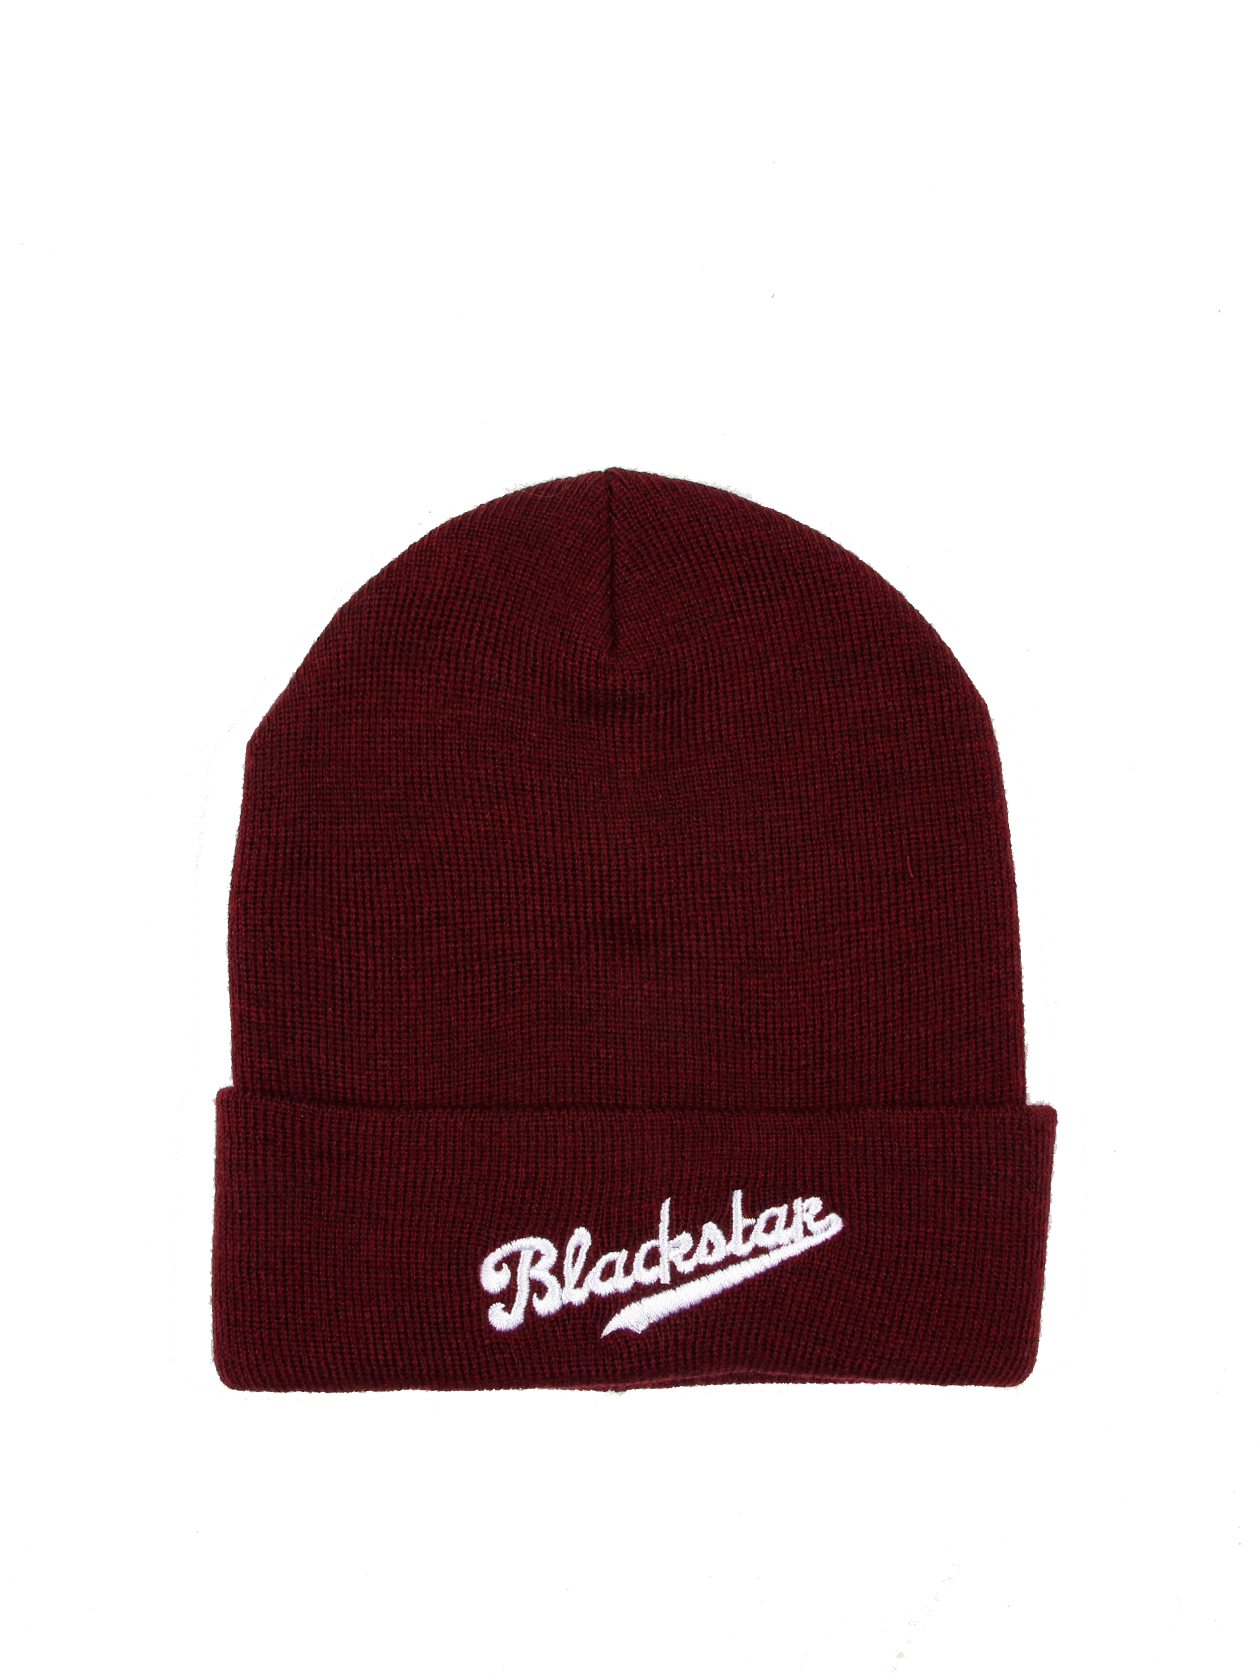 Unisex beanie ChampionUnisex beanie in by Black Star Wear. Turn-up brim with Blackstar embroidery. 100% acrylic. One size. Perfect for winter. Avaliable in black, burgundy, blue and light-blue.<br><br>size: One size<br>color: Vinous<br>gender: unisex